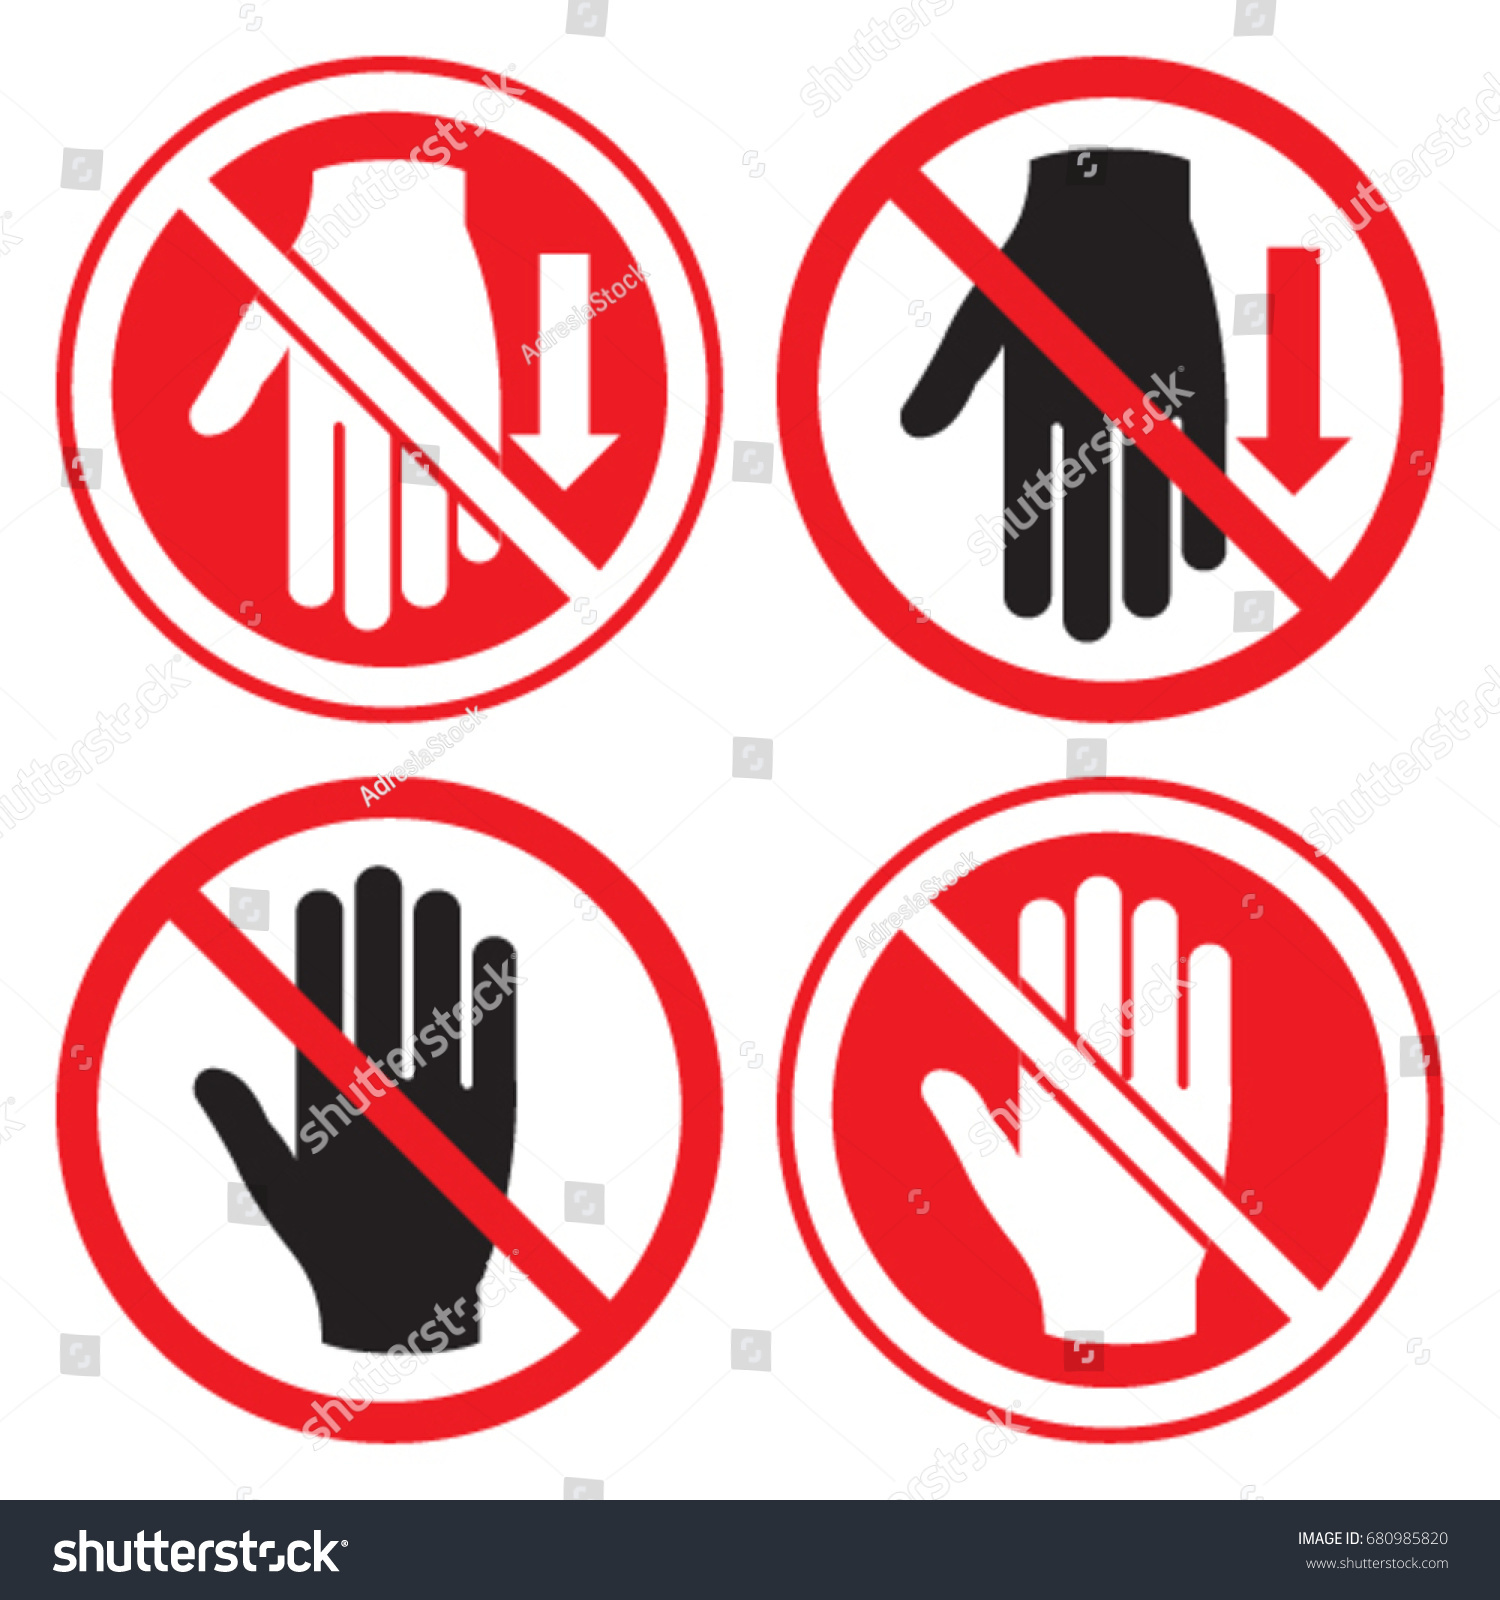 Preventative symbols stop hold touch insert stock vector 680985820 preventative symbols to stop hold touch and insert the hand buycottarizona Choice Image